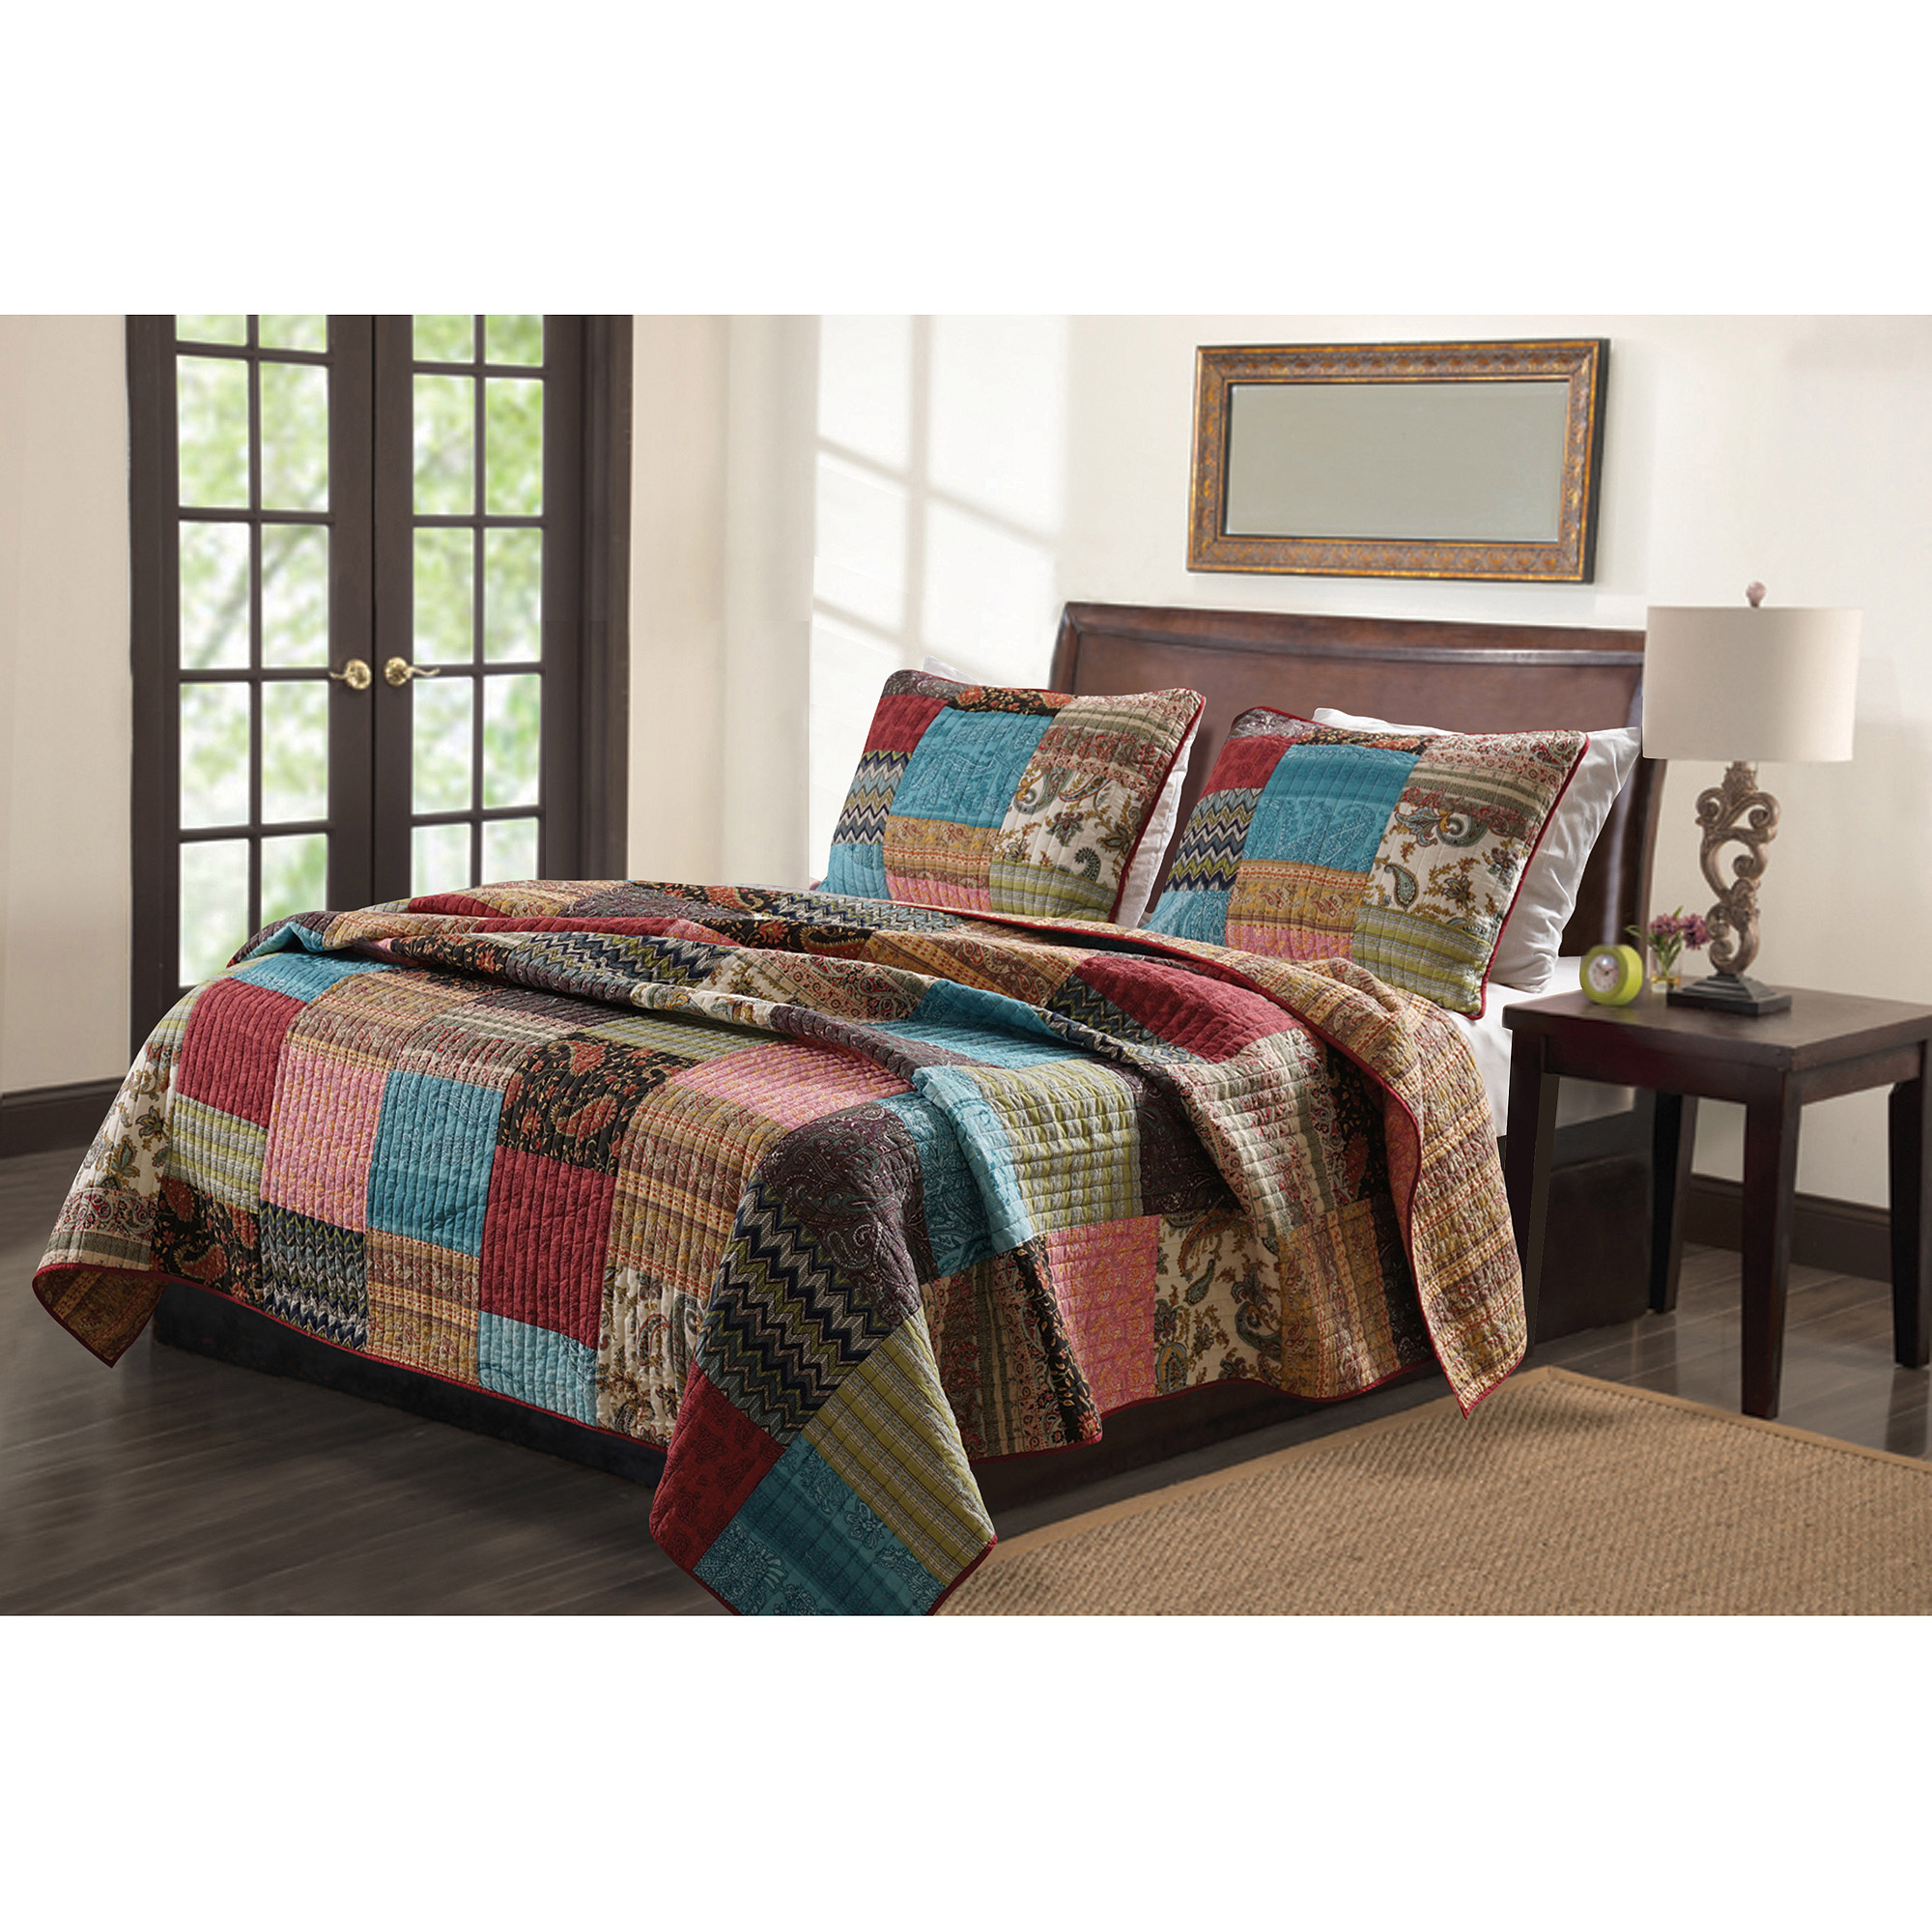 Bed sheet set with quilt - Bed Sheet Set With Quilt 48